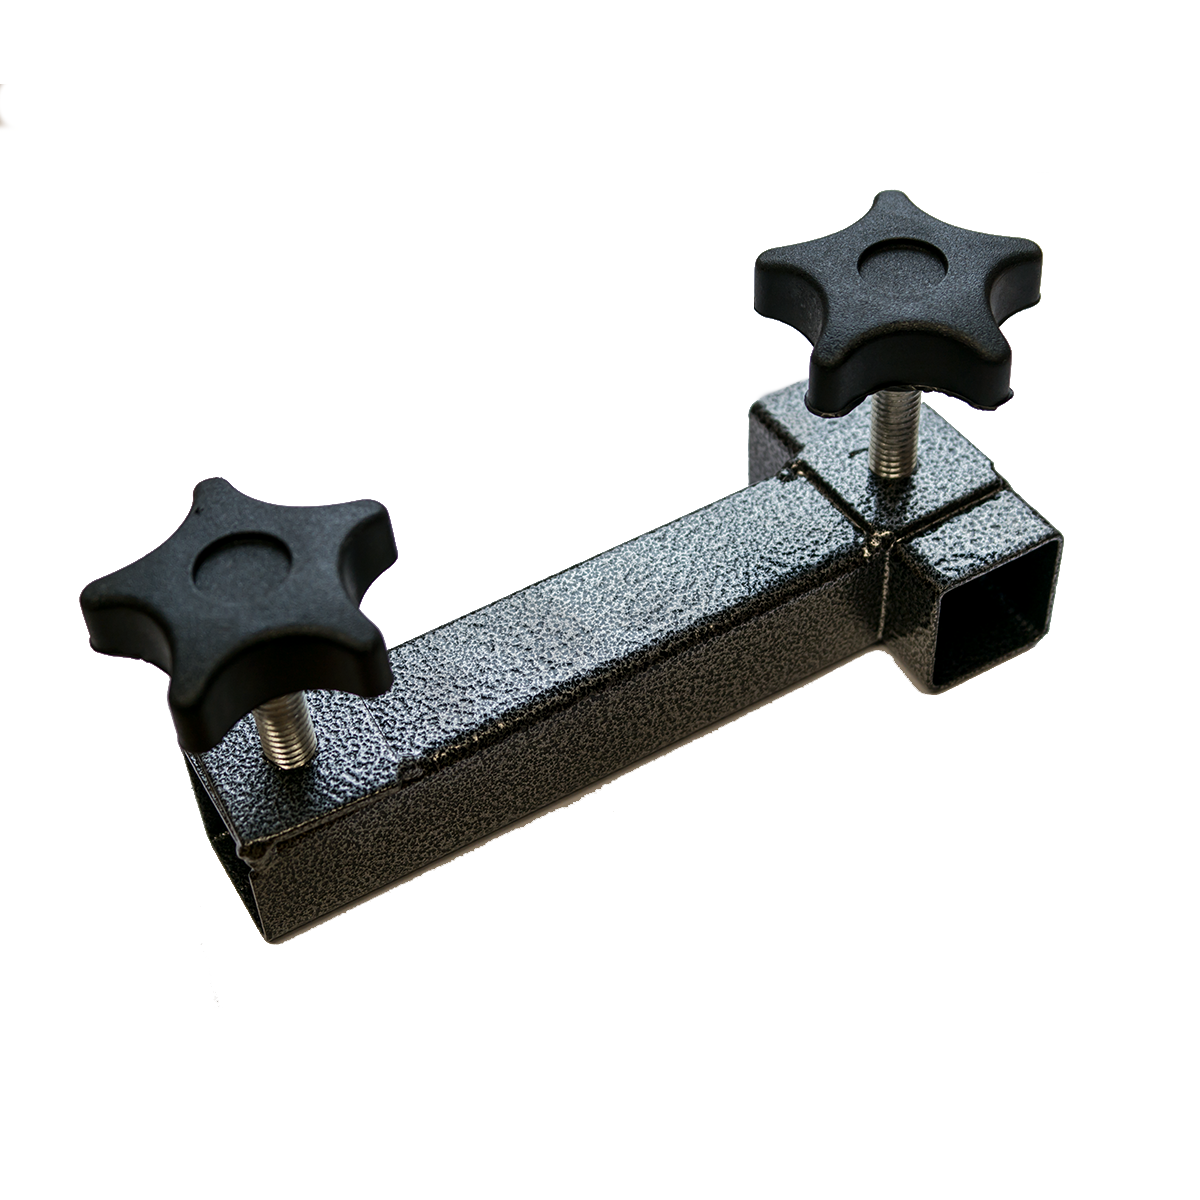 Hydraulic Link Clamps Tools Equipment Tagged Pulling: REPLACEMENT ADJUSTABLE H BAR FOR HYDRAULIC GROOMING TABLE